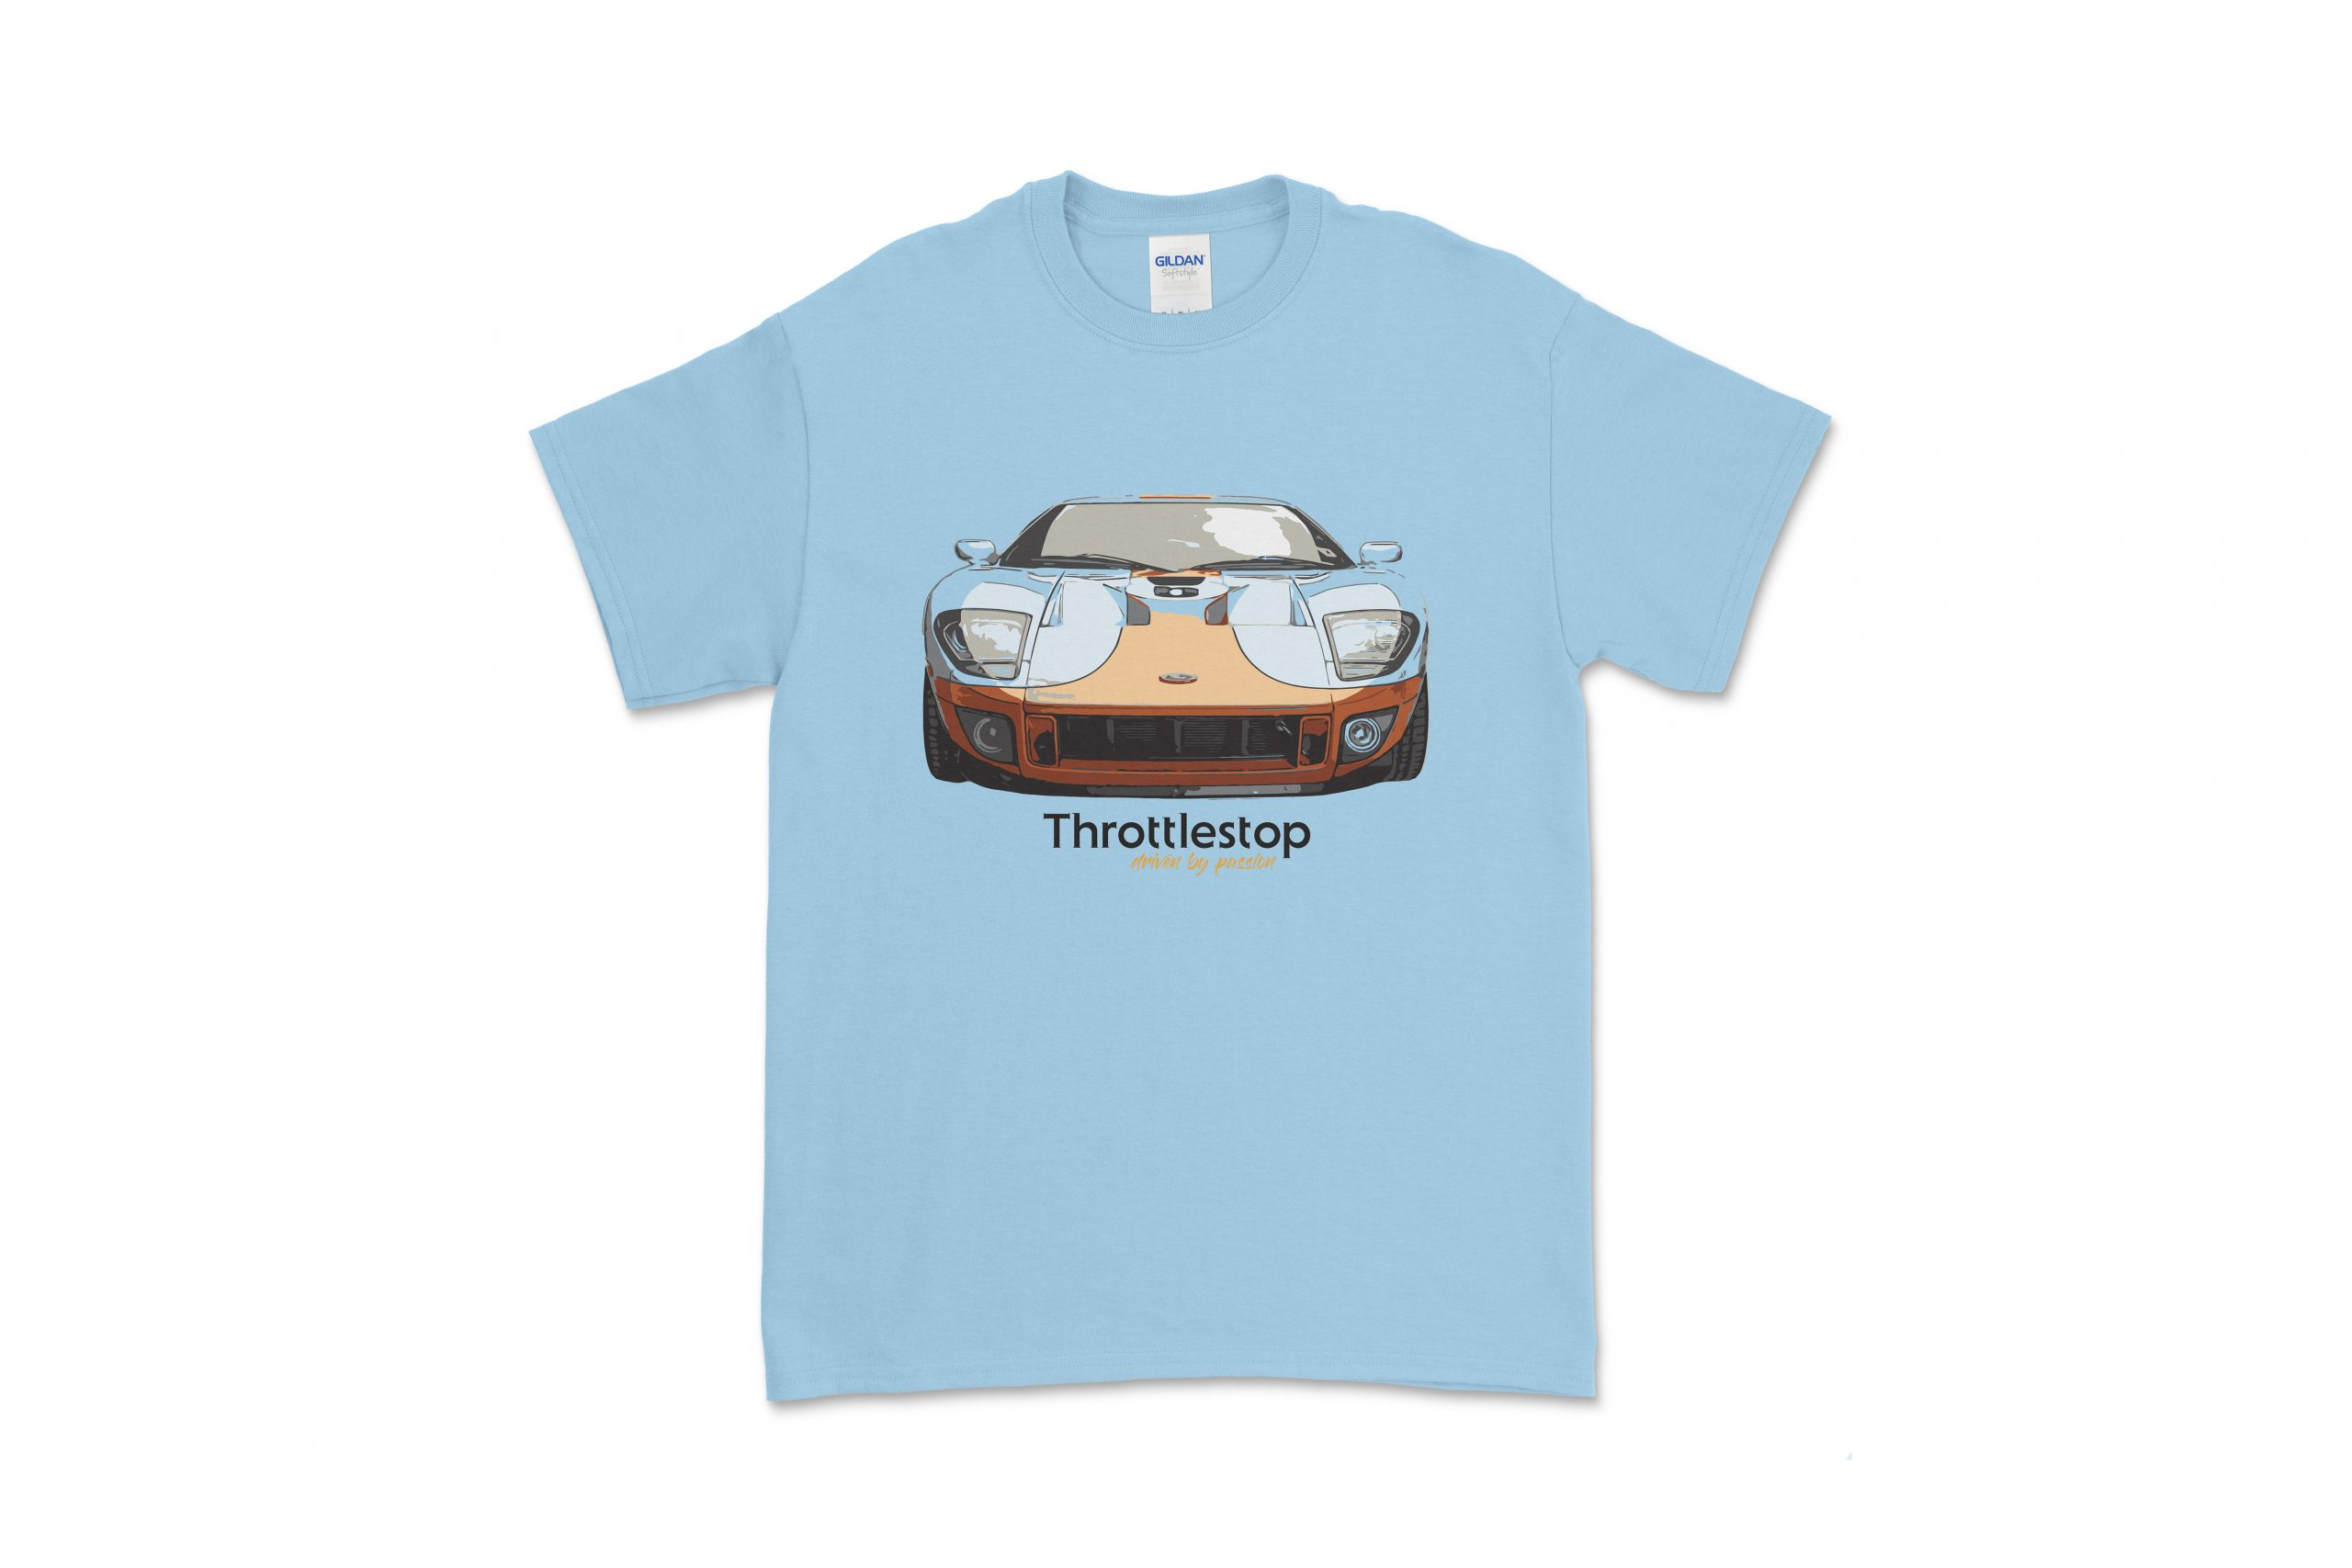 Ford GT tee